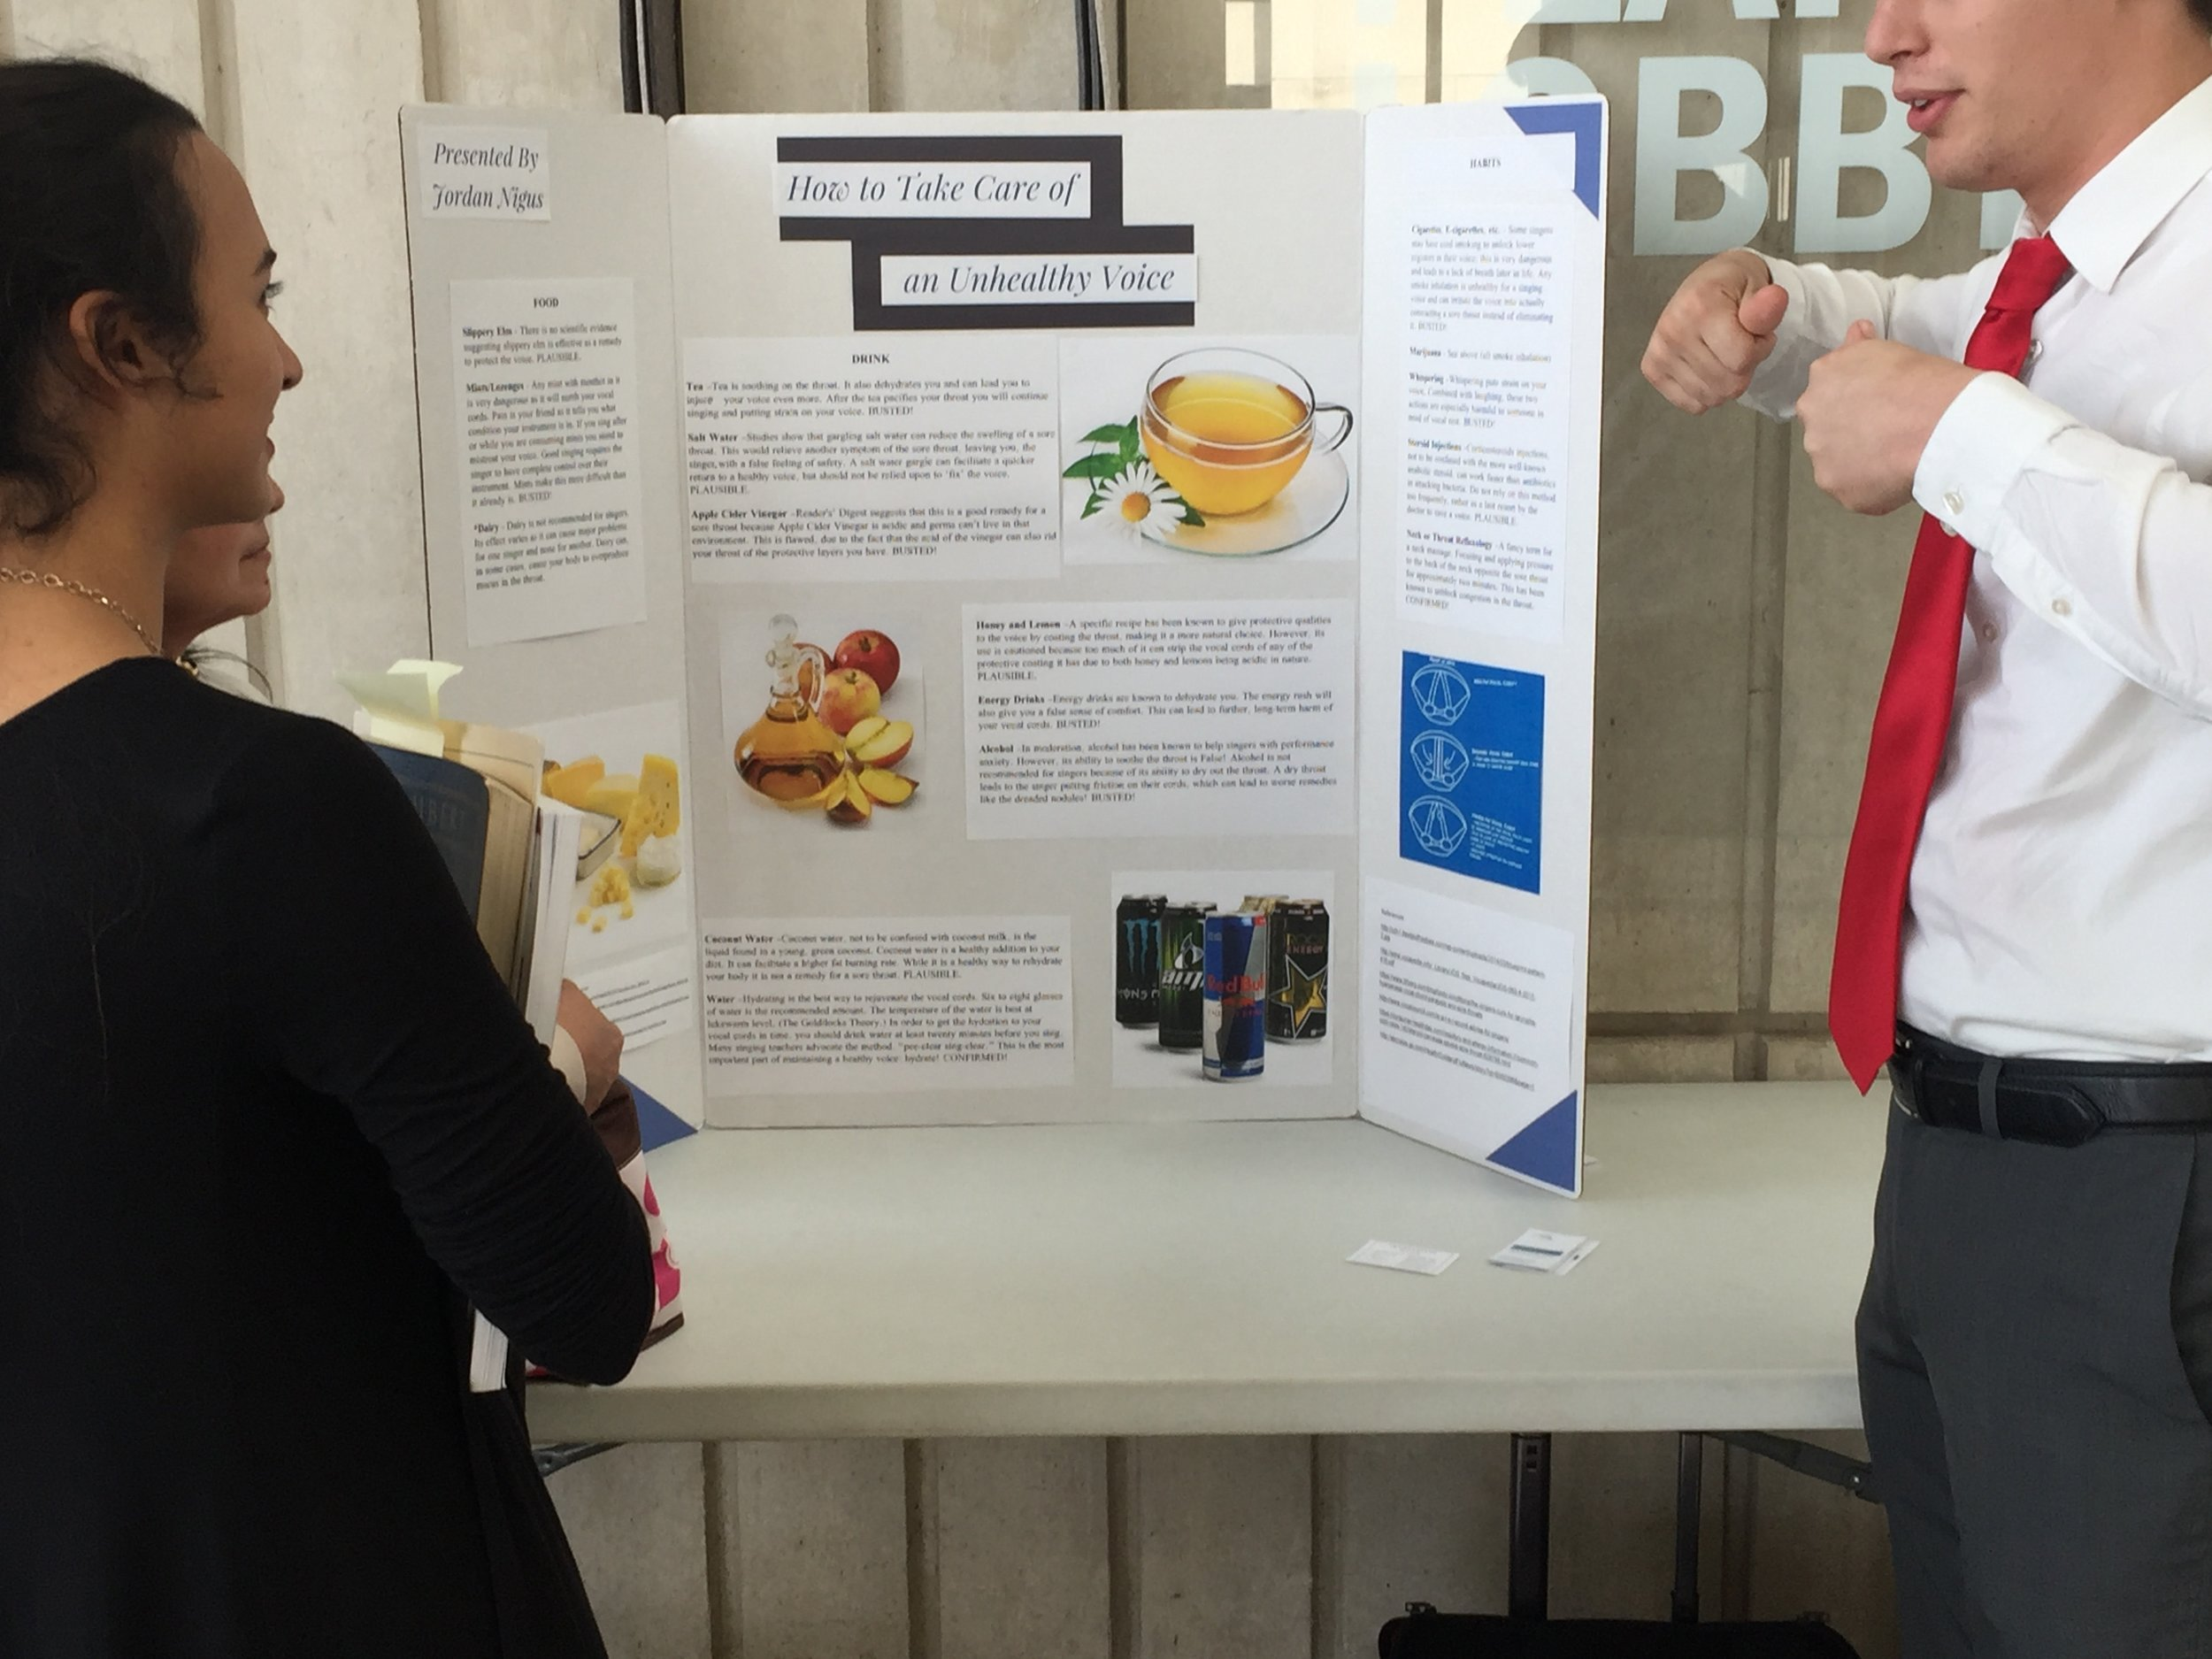 2016 Poster Session - How to take care of an unhealthy voice.jpeg